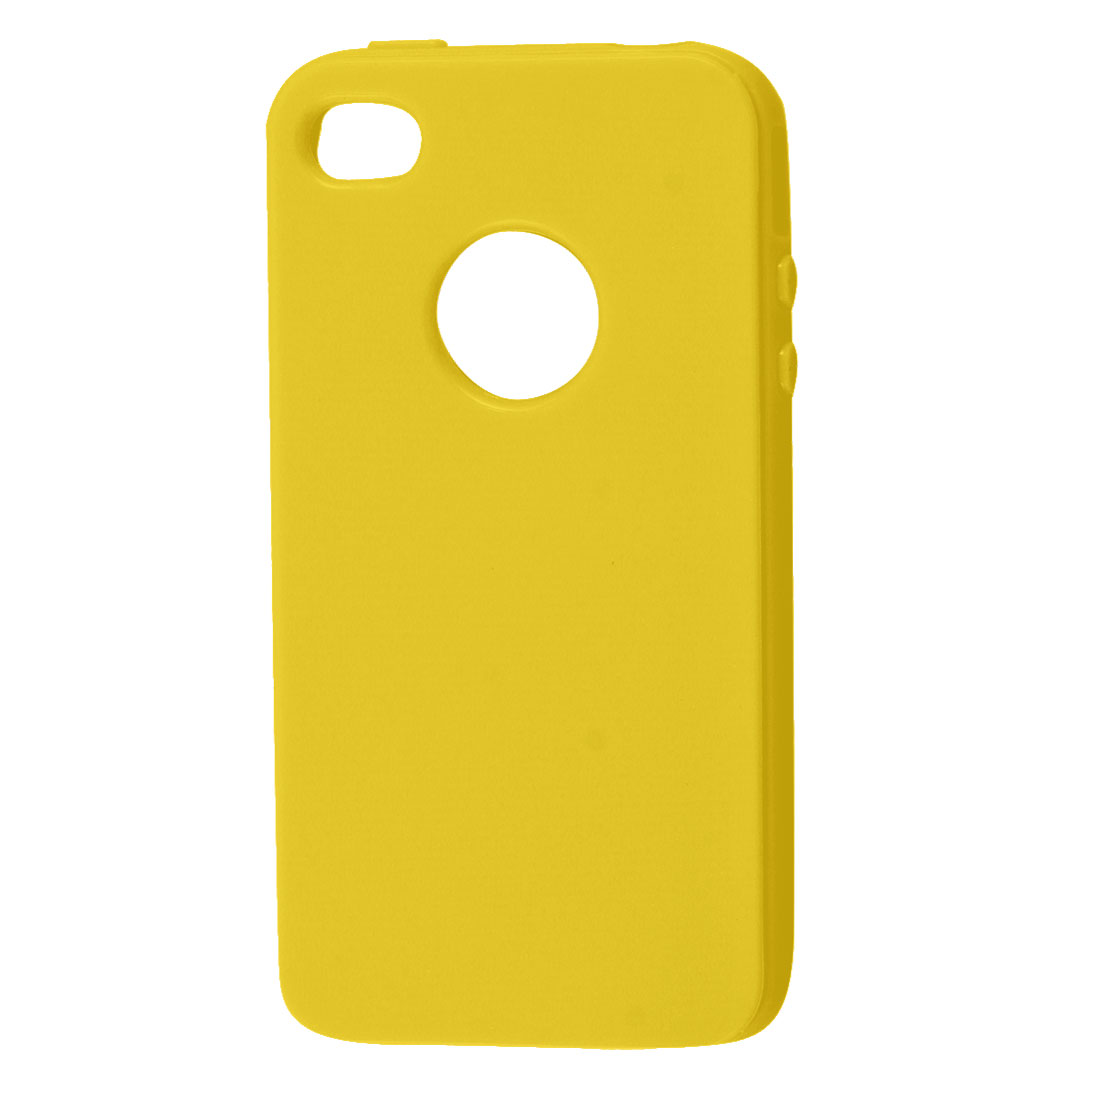 Yellow Soft Plastic Case Shell for Apple iPhone 4 4G 4GS 4S